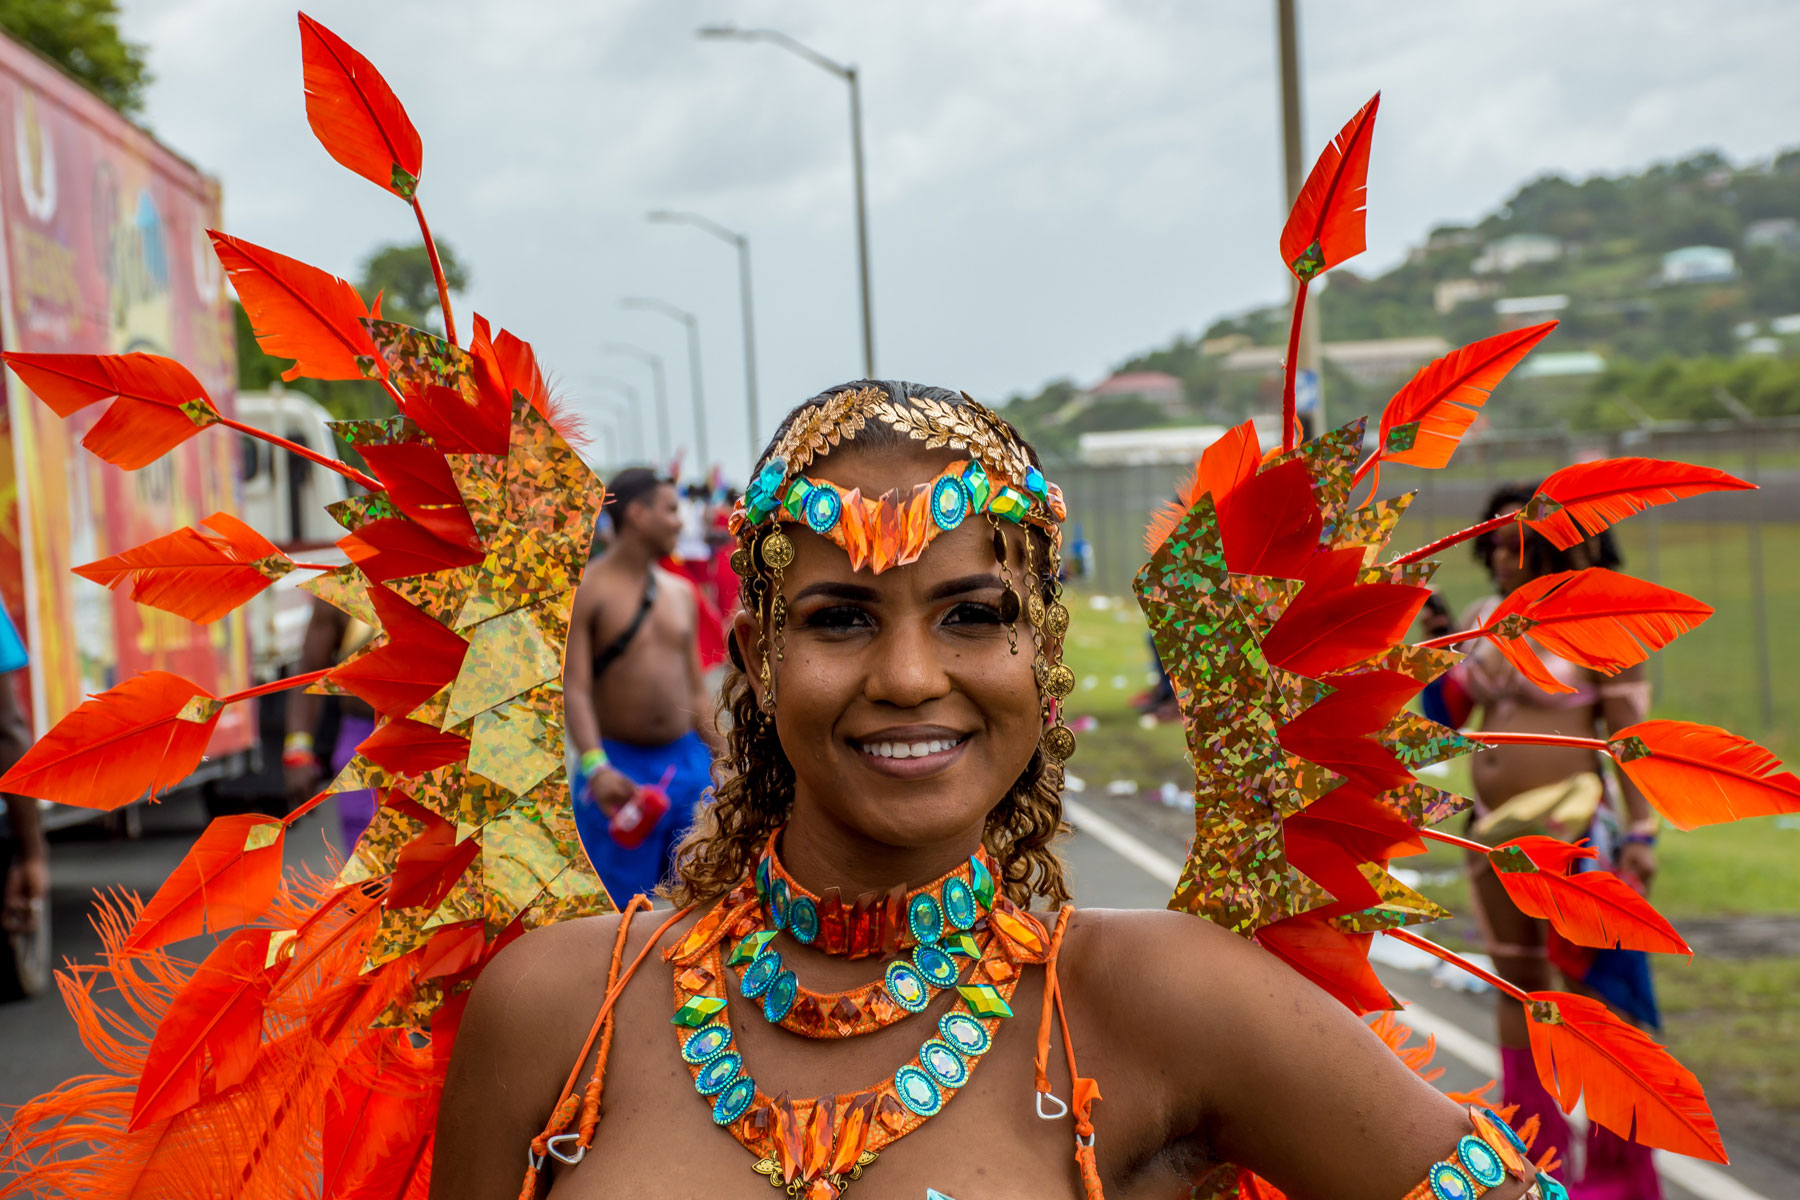 Woman in orange carnival outfit